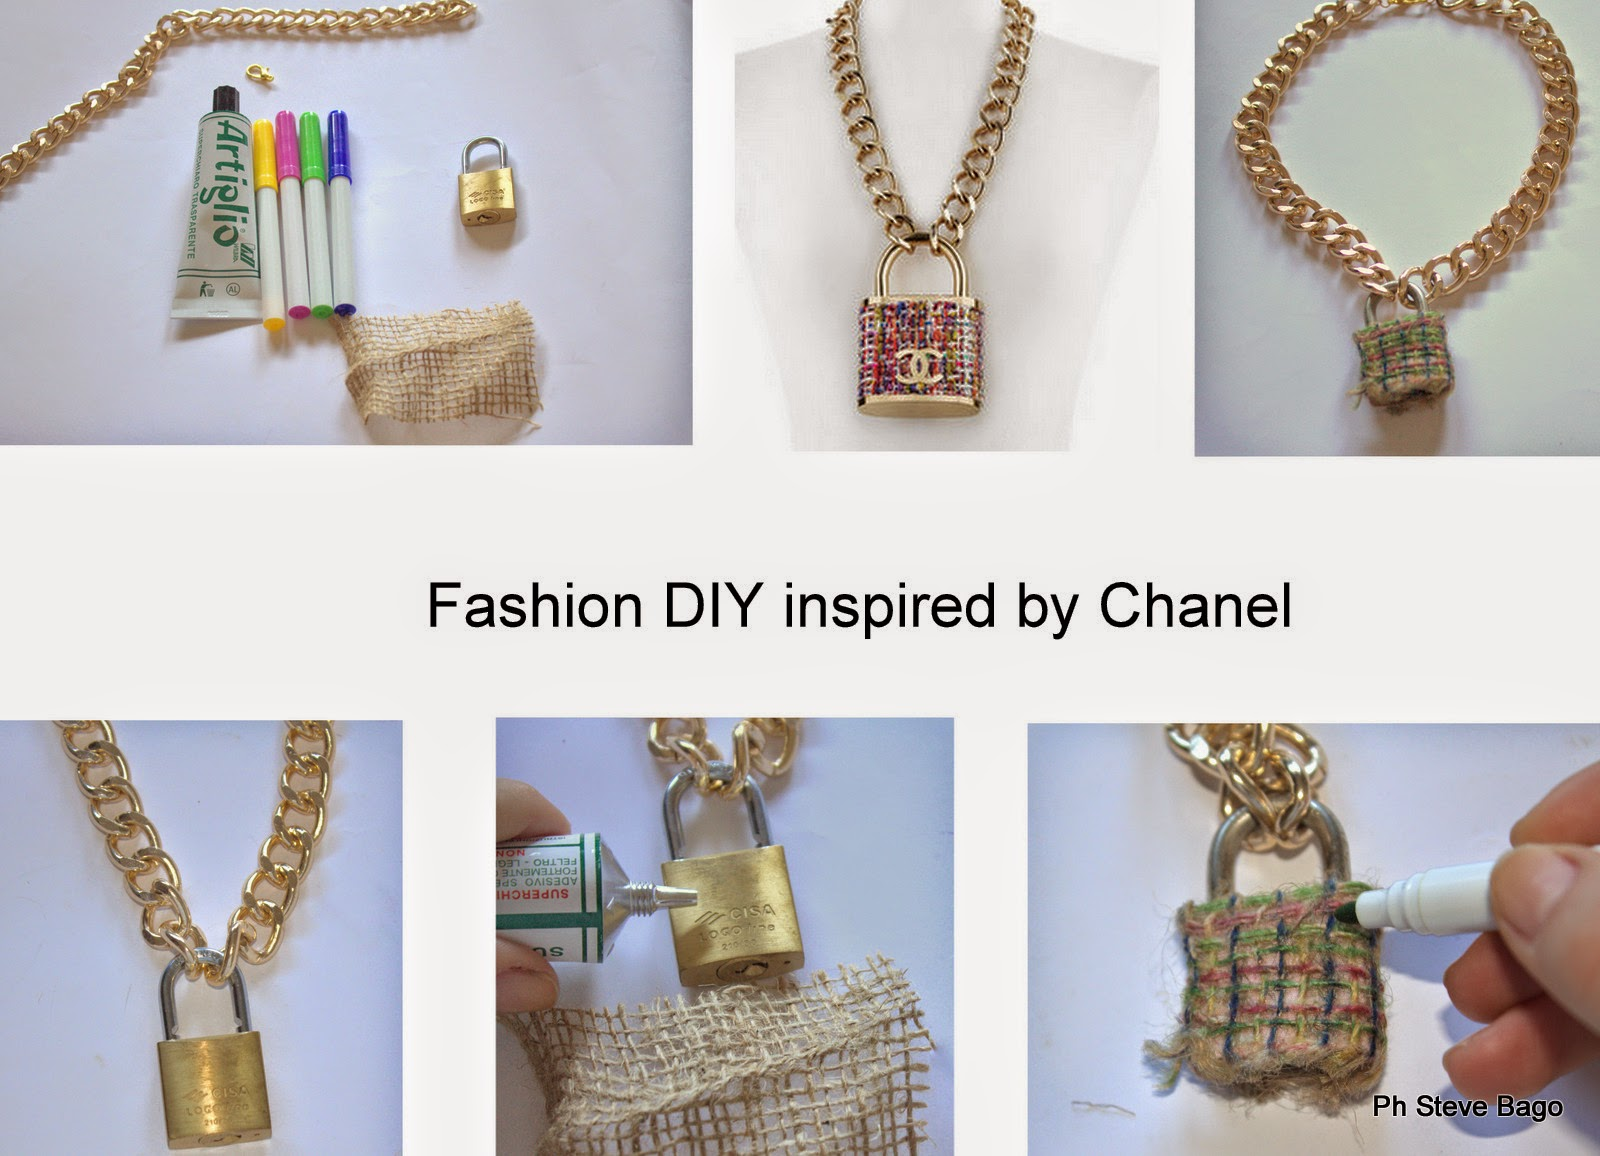 themorasmoothie, chanel, chanel lucchetto, chanel collana, chanel necklace, diy chanel, fashion DIY, tutorial, tutorial necklace, tutorial collana, tutorial Chanel, fashion, fashionblog, fashionblogger, italianblogger, blogger, diyproject, craft, crafts, diycraft, themorasmoothie